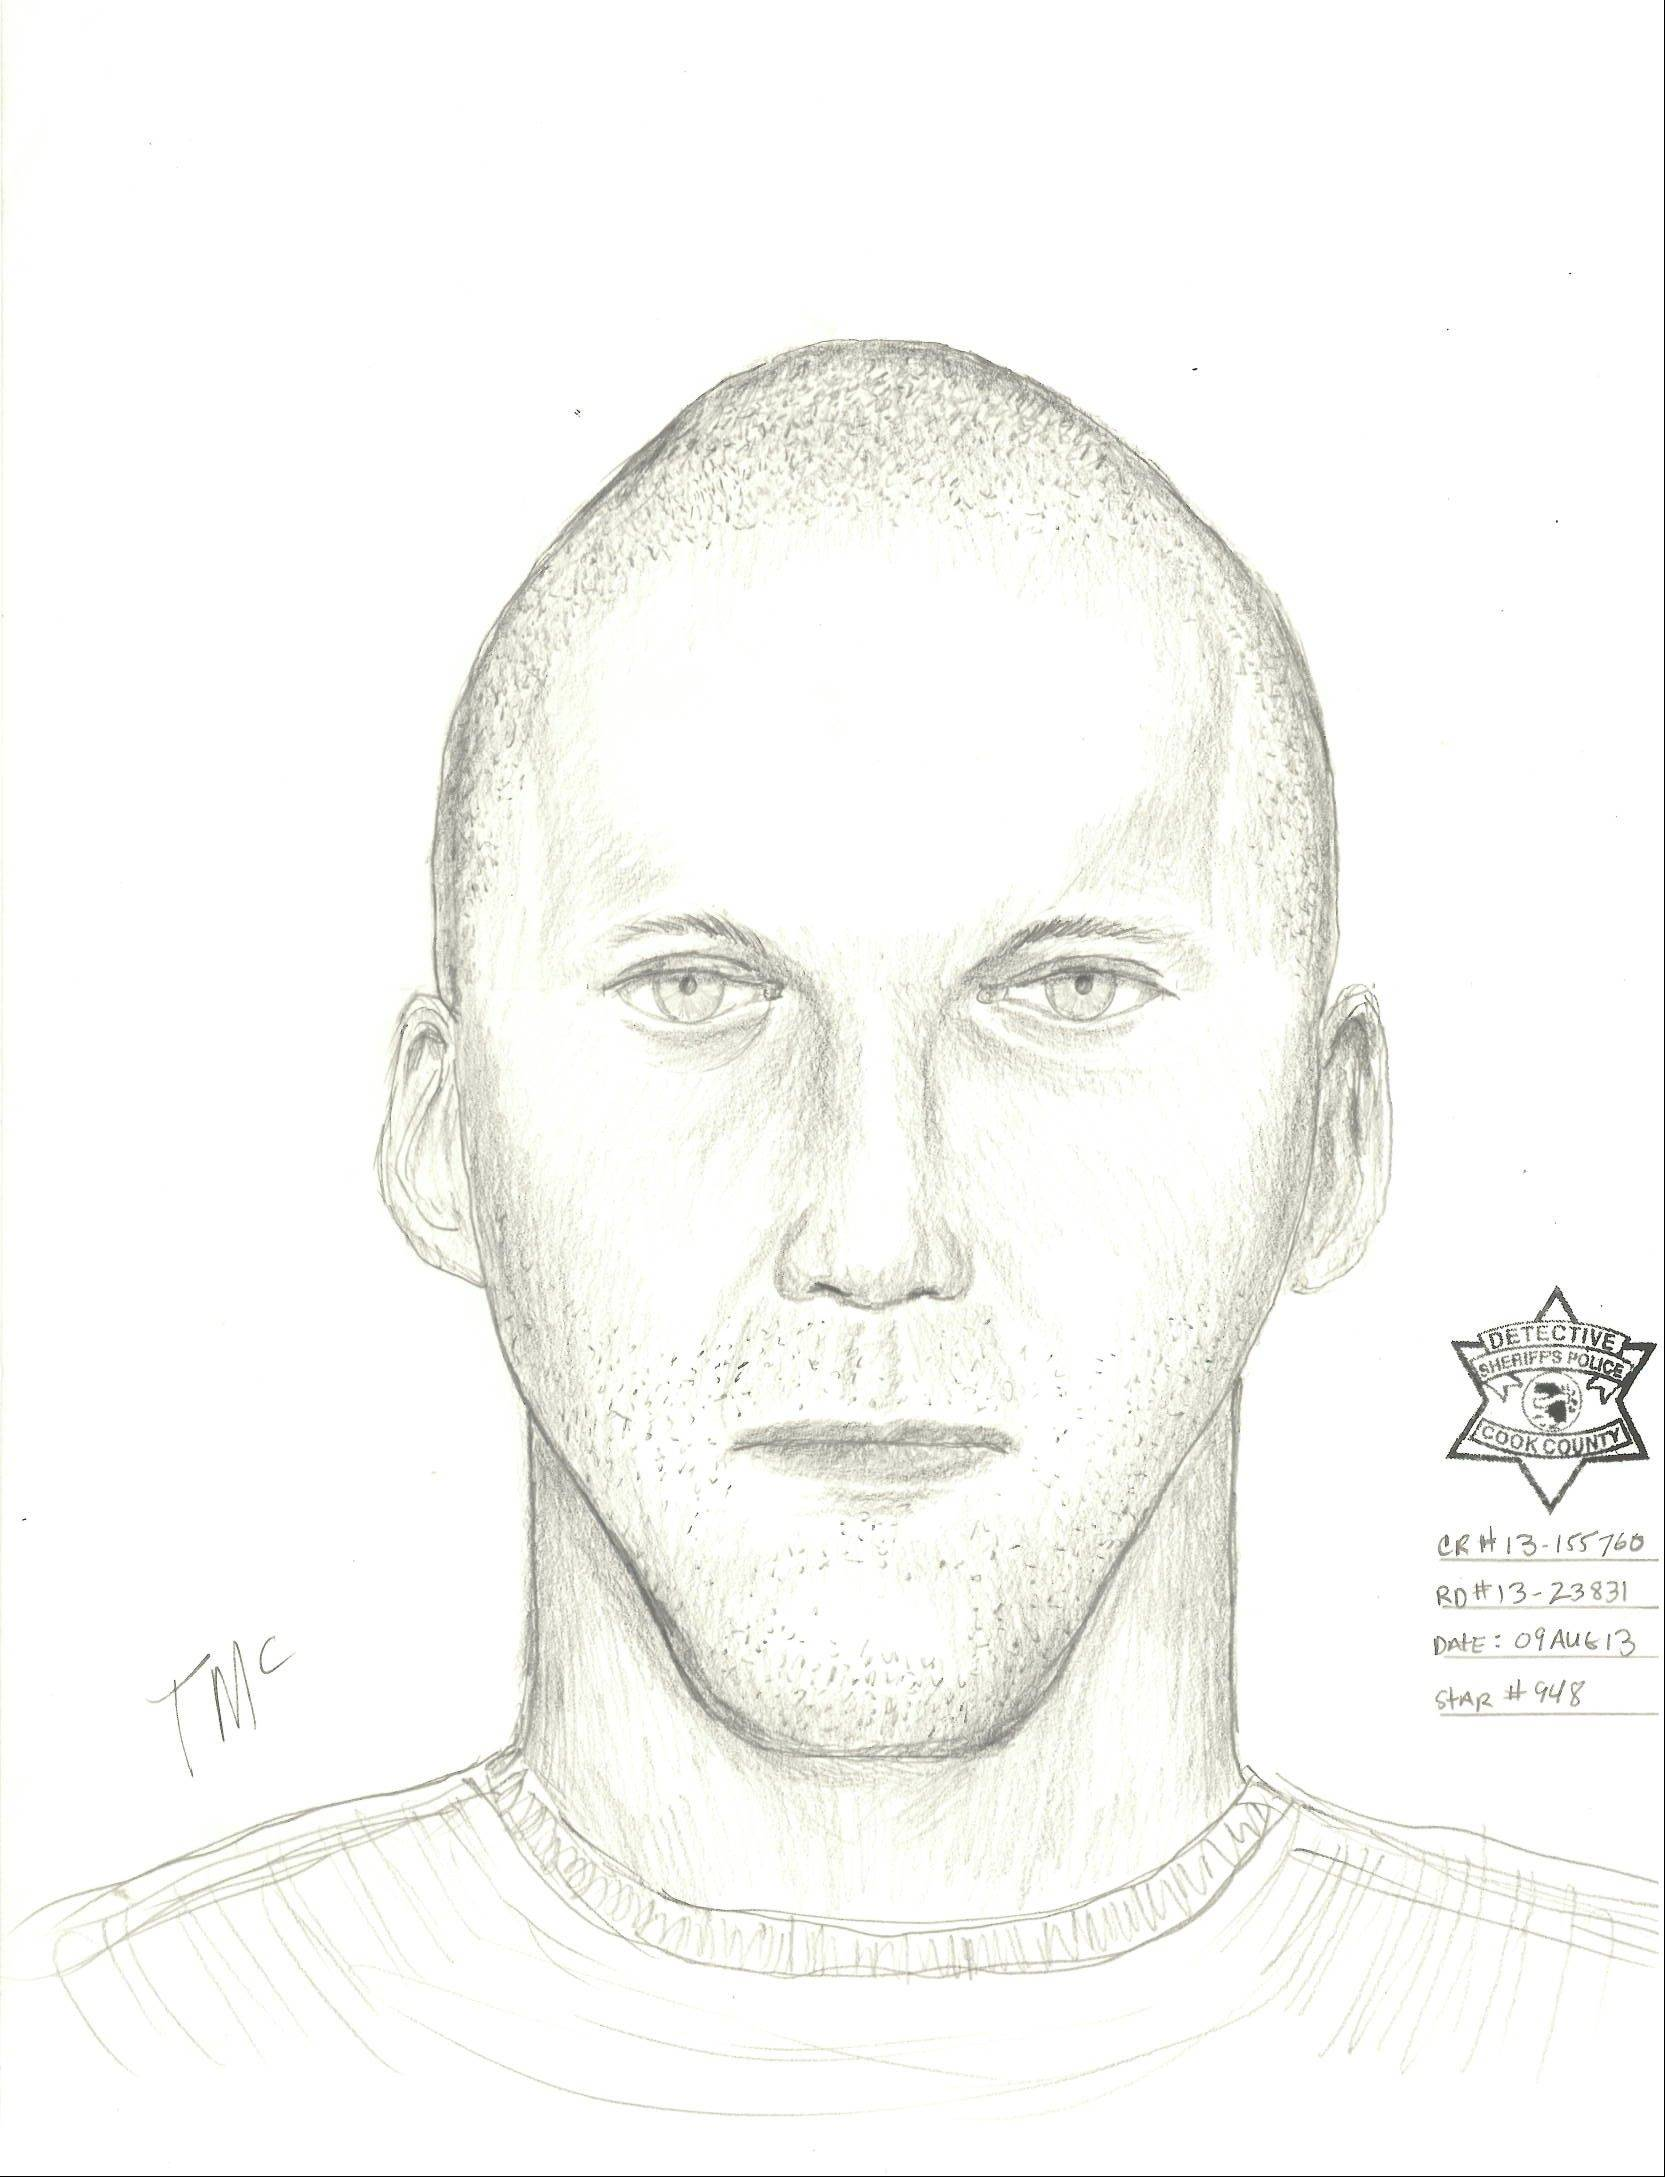 A suspect in an Aug. 8 home invasion in Des Plaines.